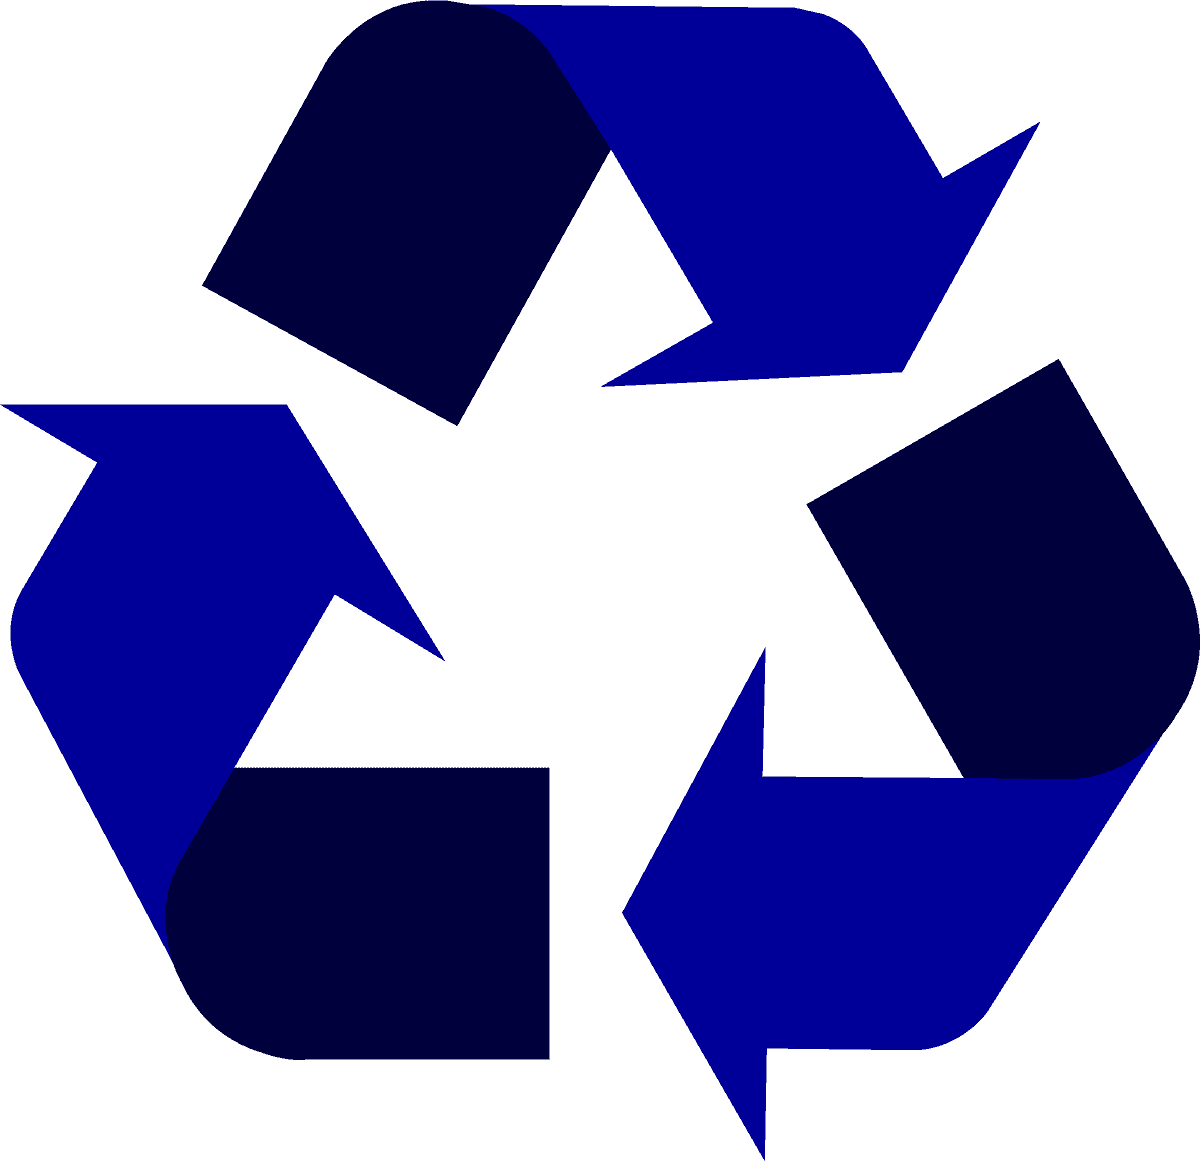 recycling-symbol-icon-twotone-dark-blue